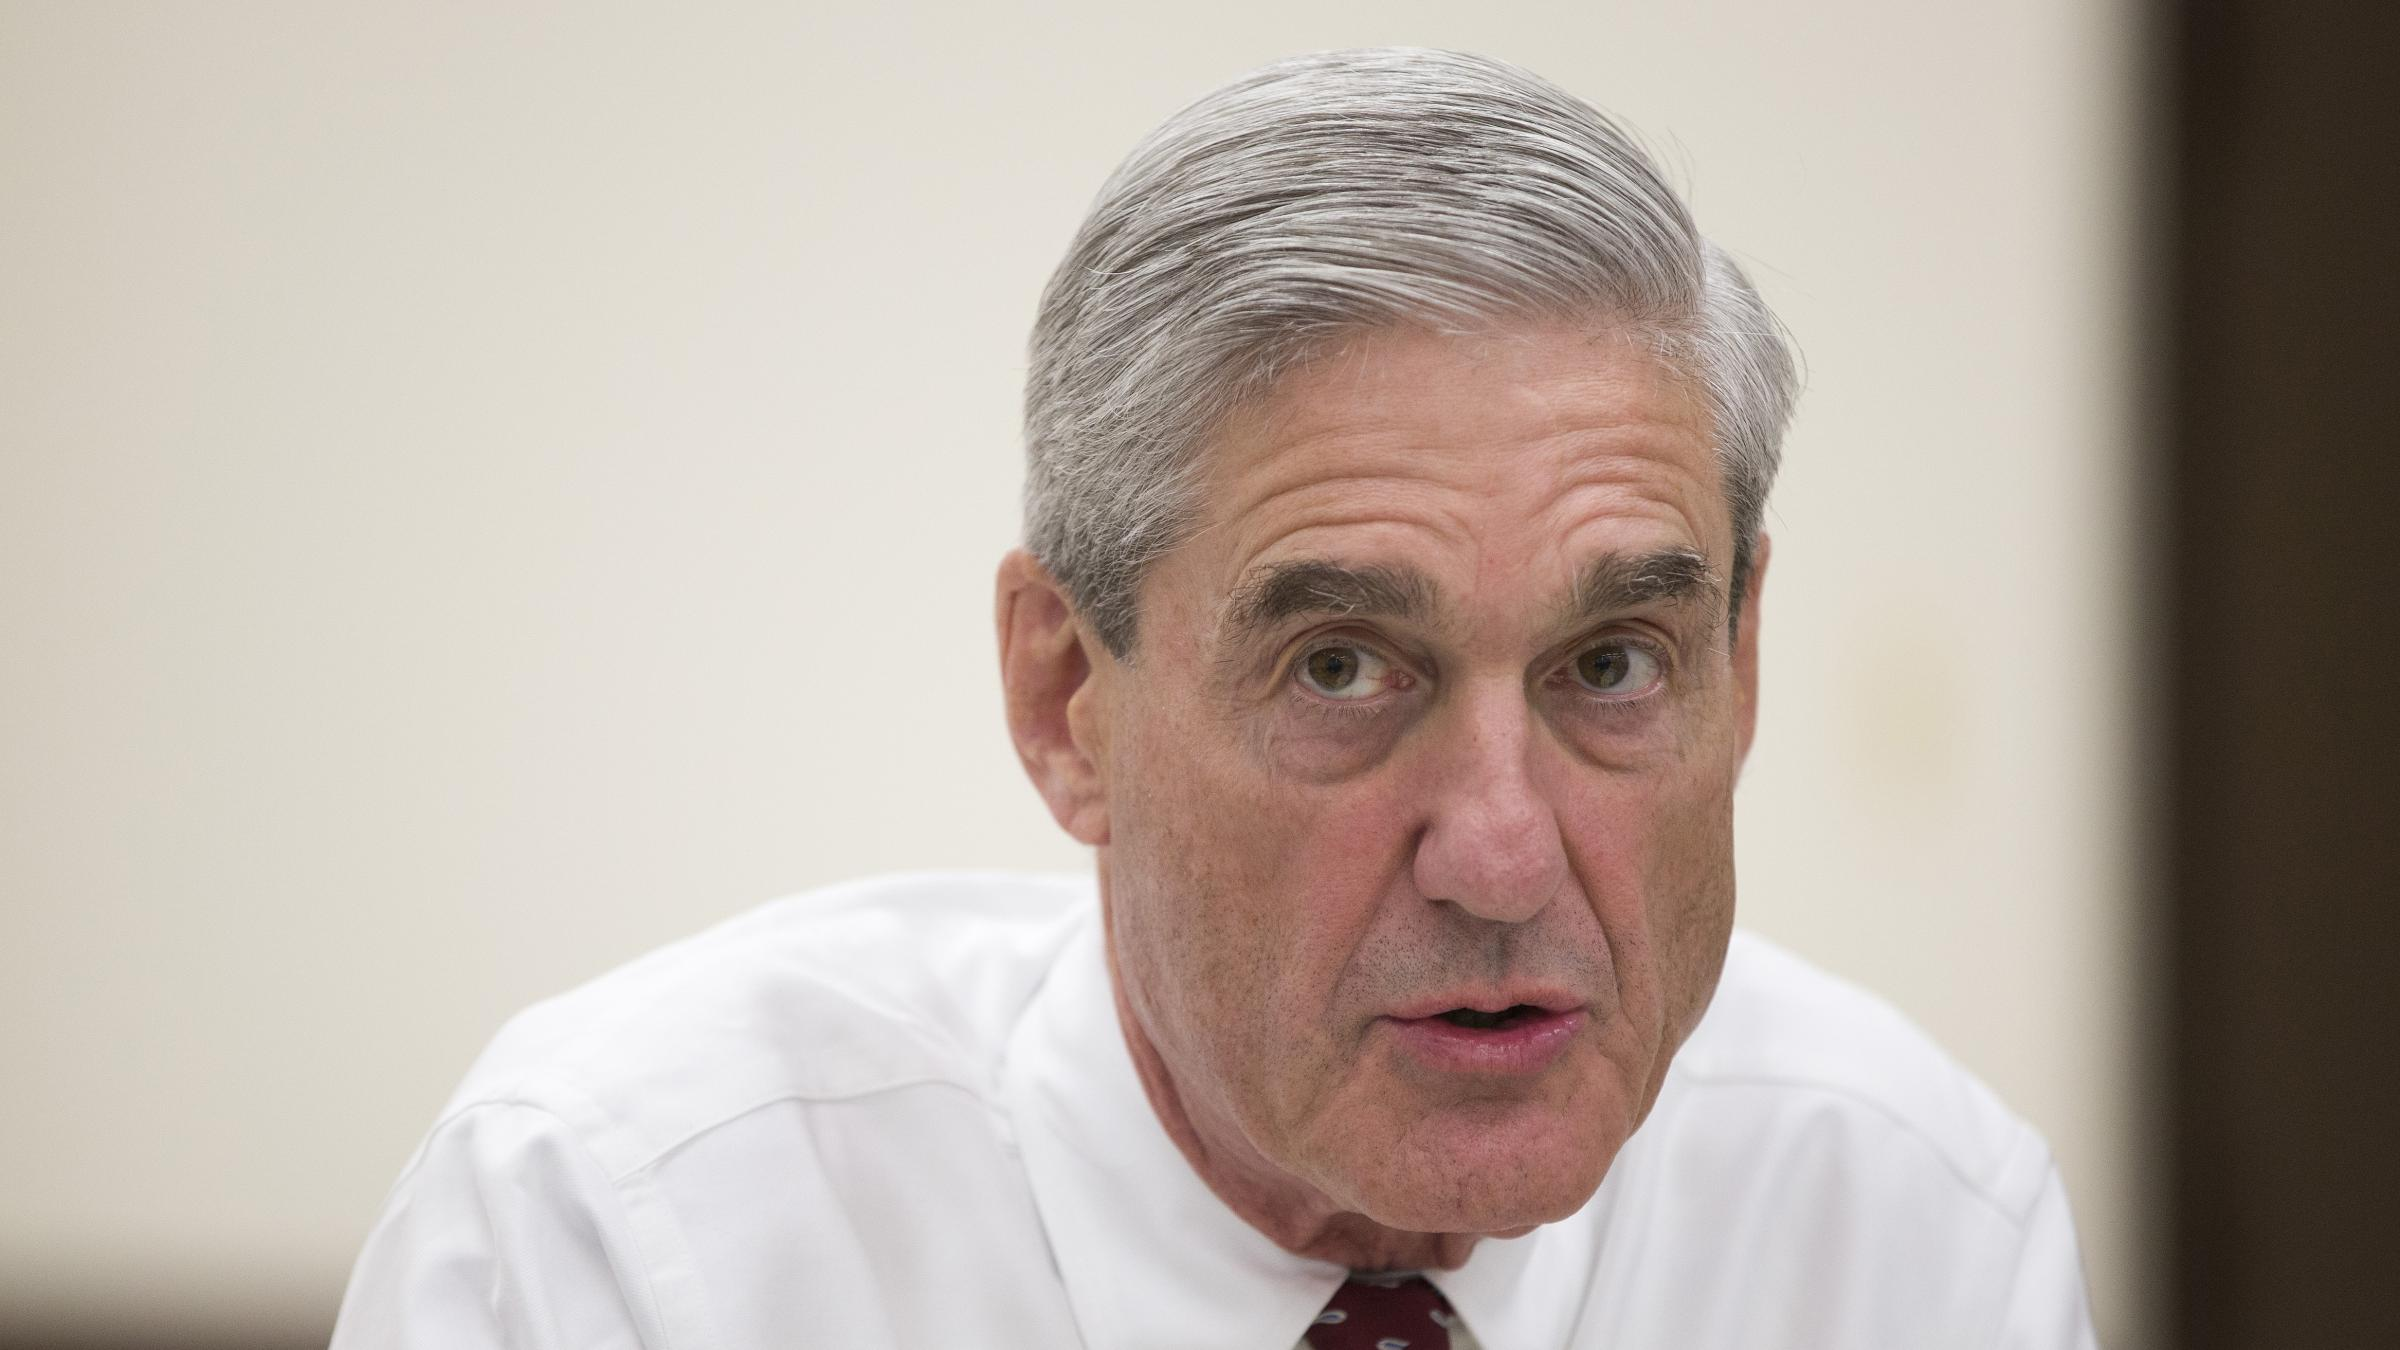 Robert Mueller hires 13 lawyers to handle Russia investigation